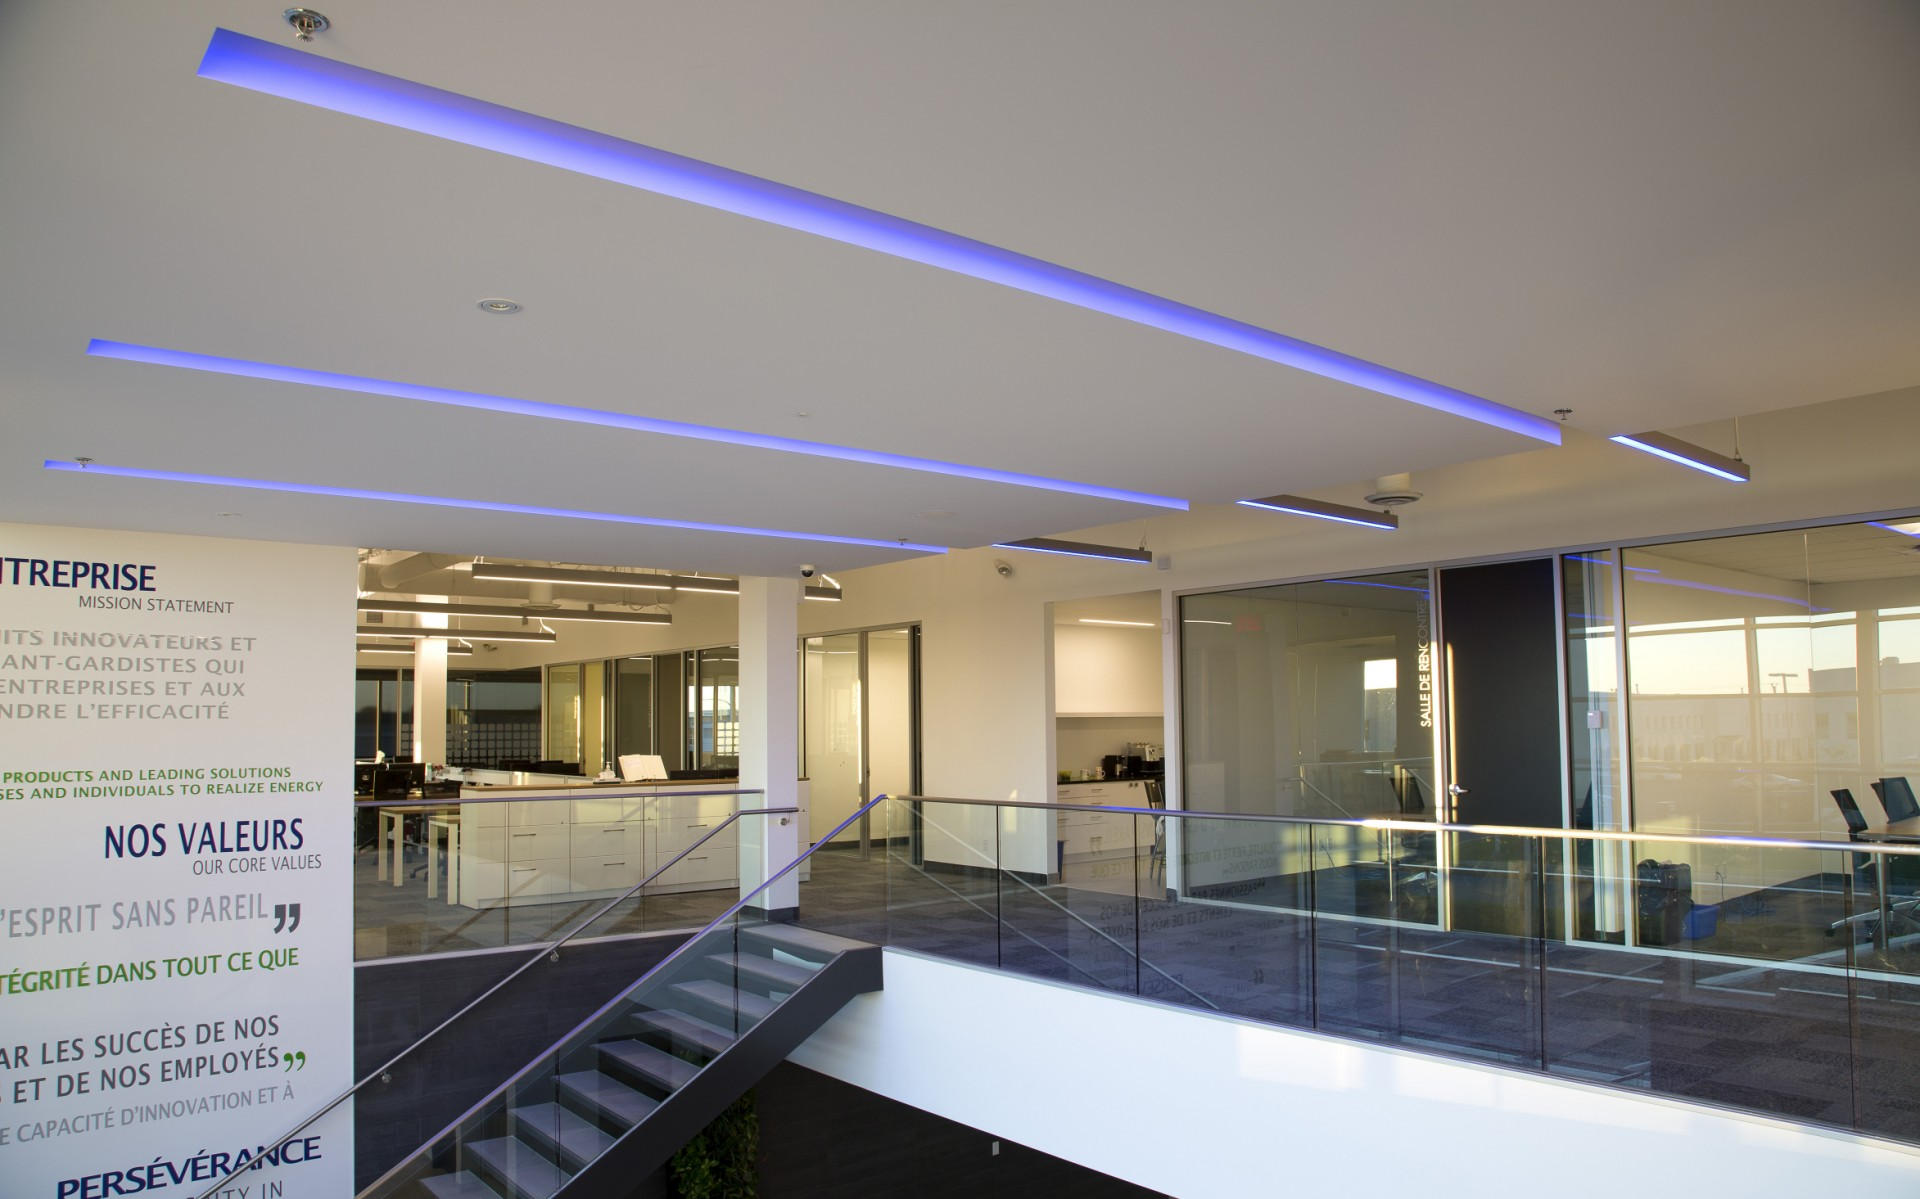 The Lumenline RGB luminaires are mounted in slots in the ceiling, emerging as pendants at the end.